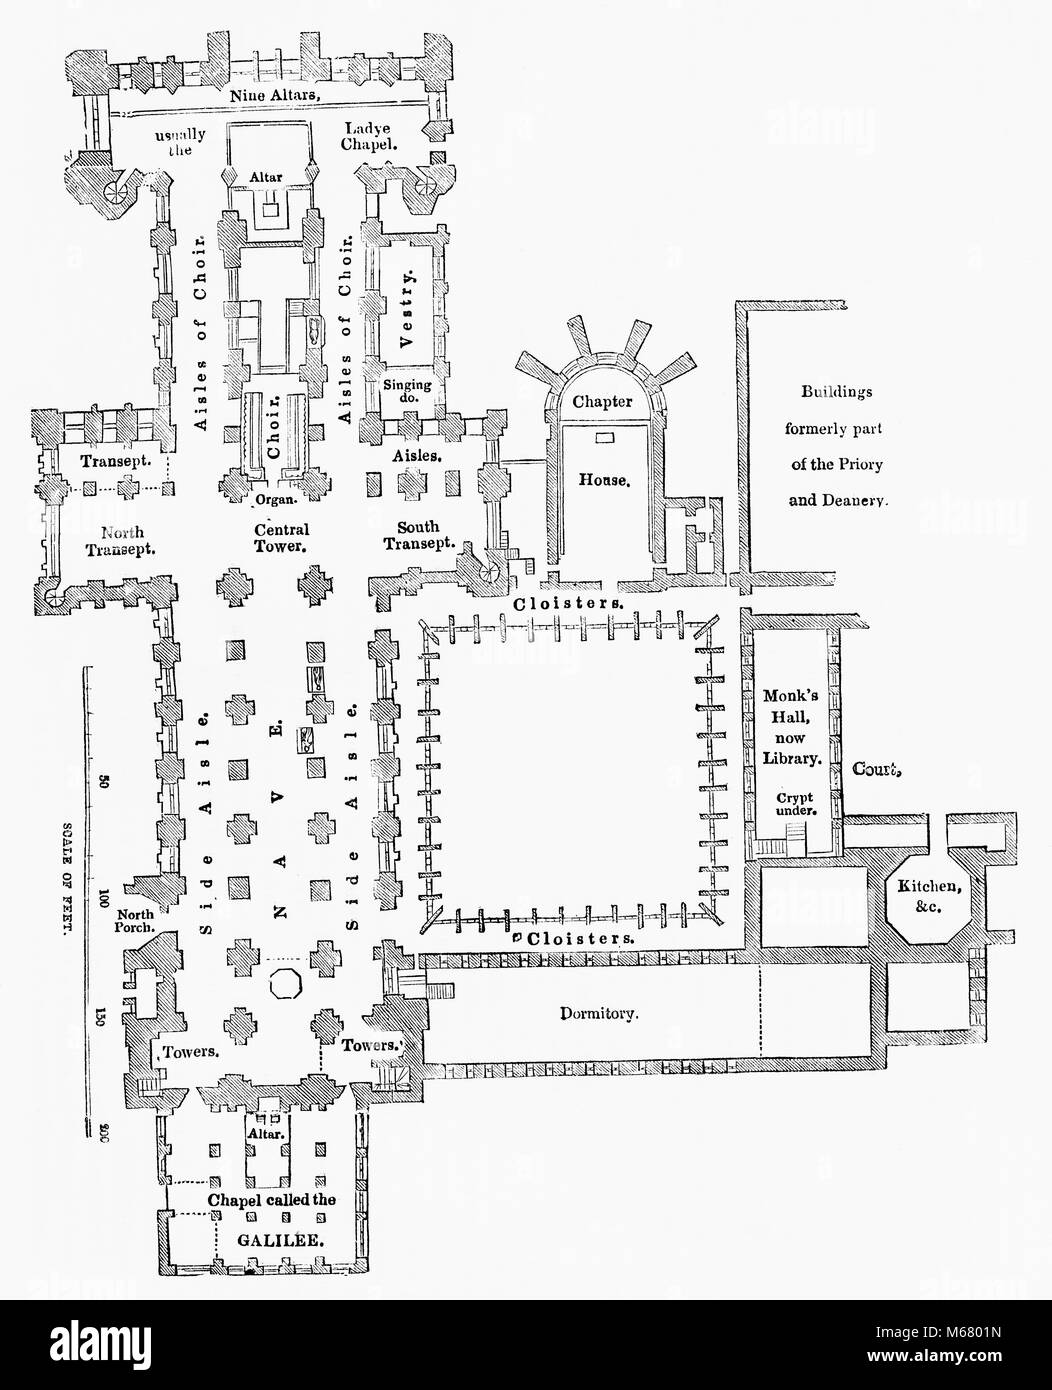 Floor plan of Durham Cathedral, Durham, England.  From Old England: A Pictorial Museum, published 1847. - Stock Image